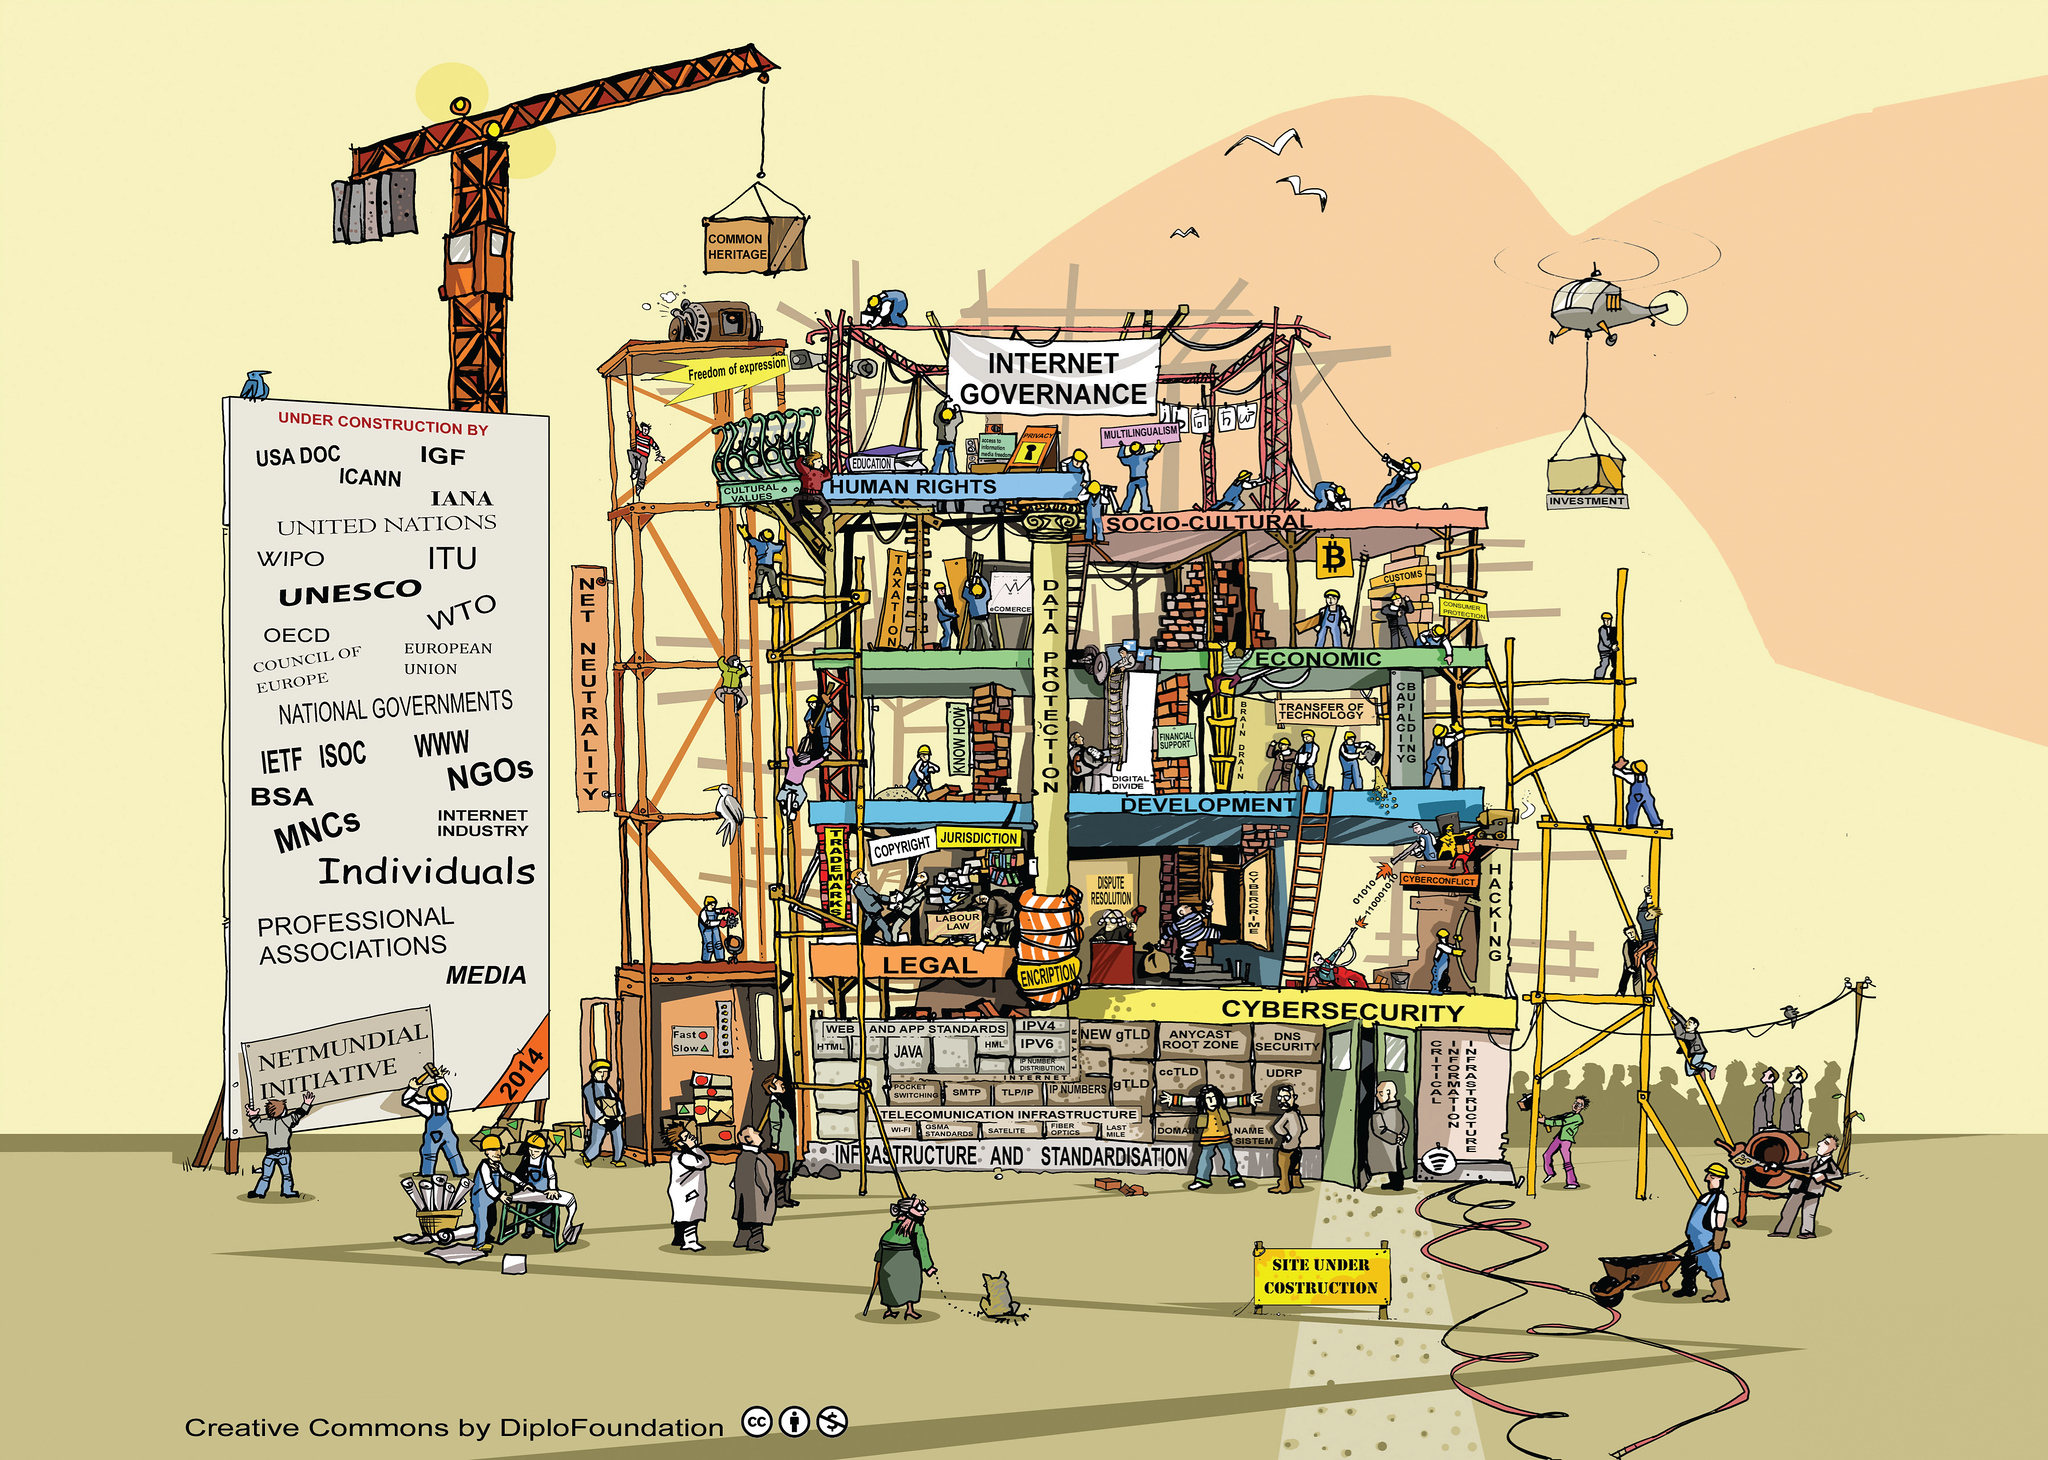 Internet governance (IG) Building under Construction - 2014